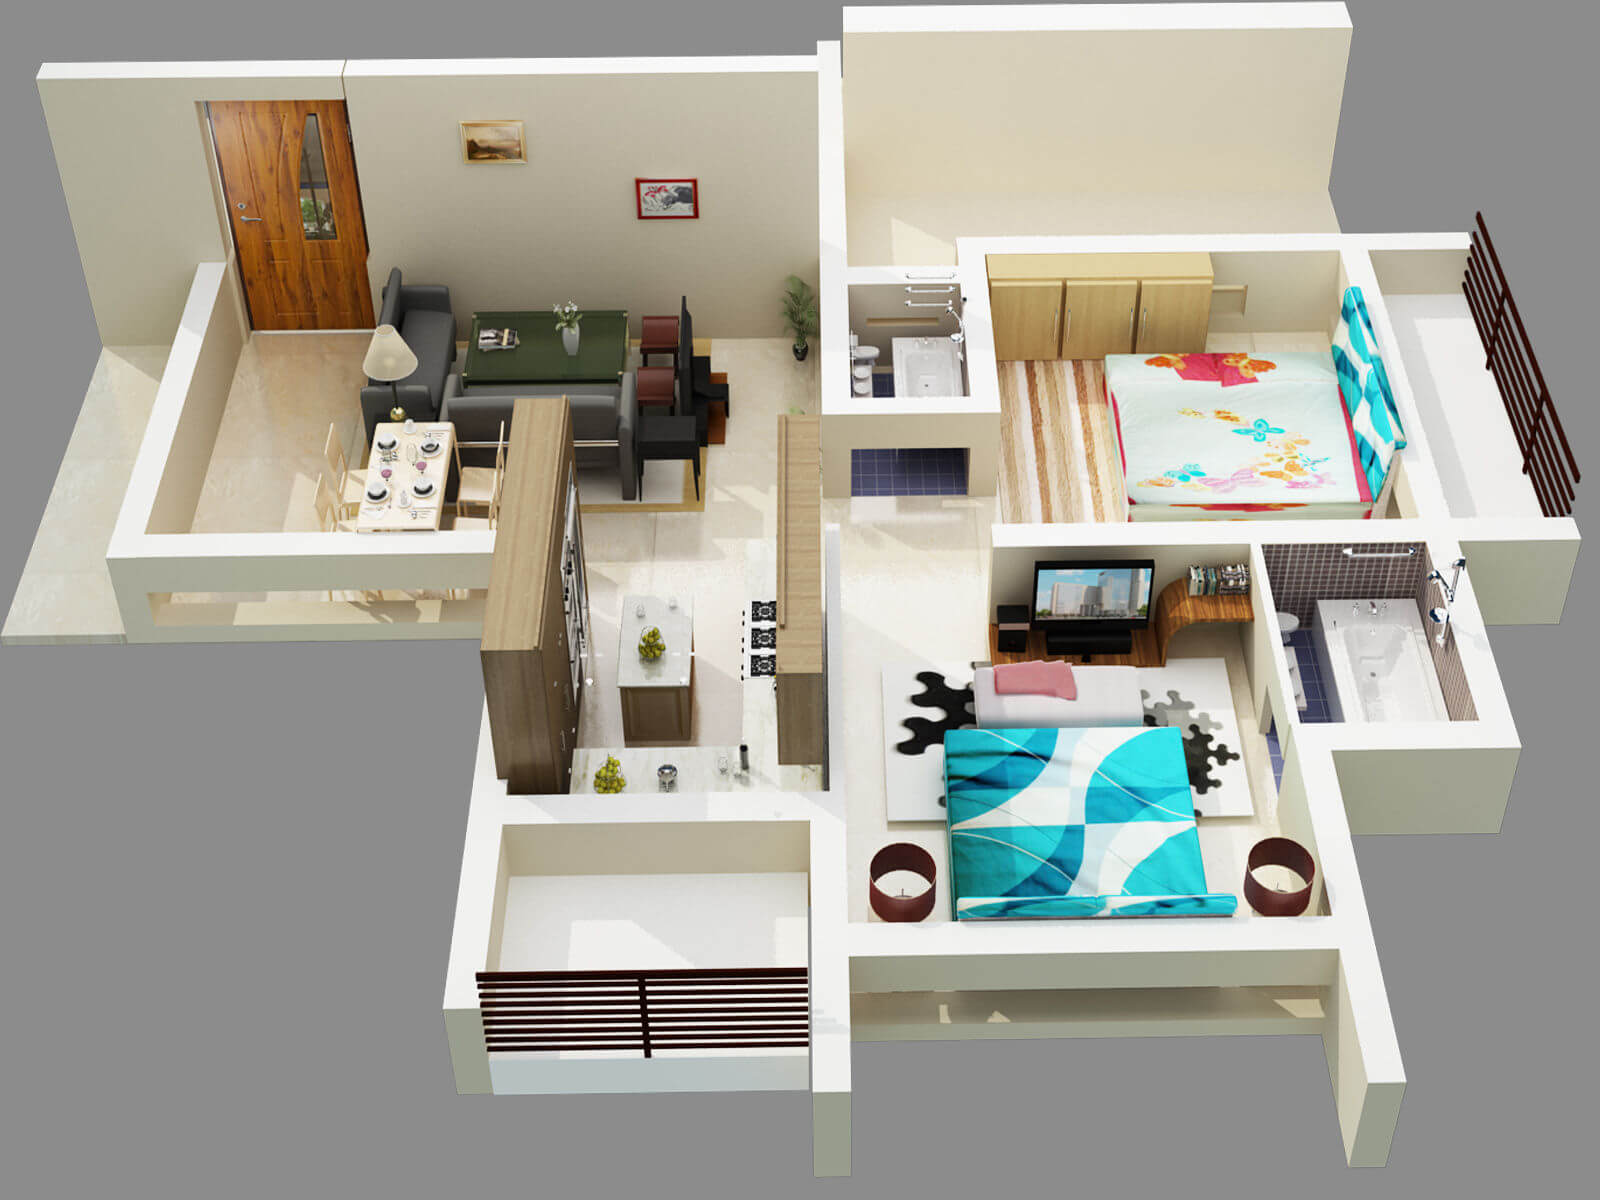 How To Visualize Floor Plans Better Create Beautiful 3d Designs